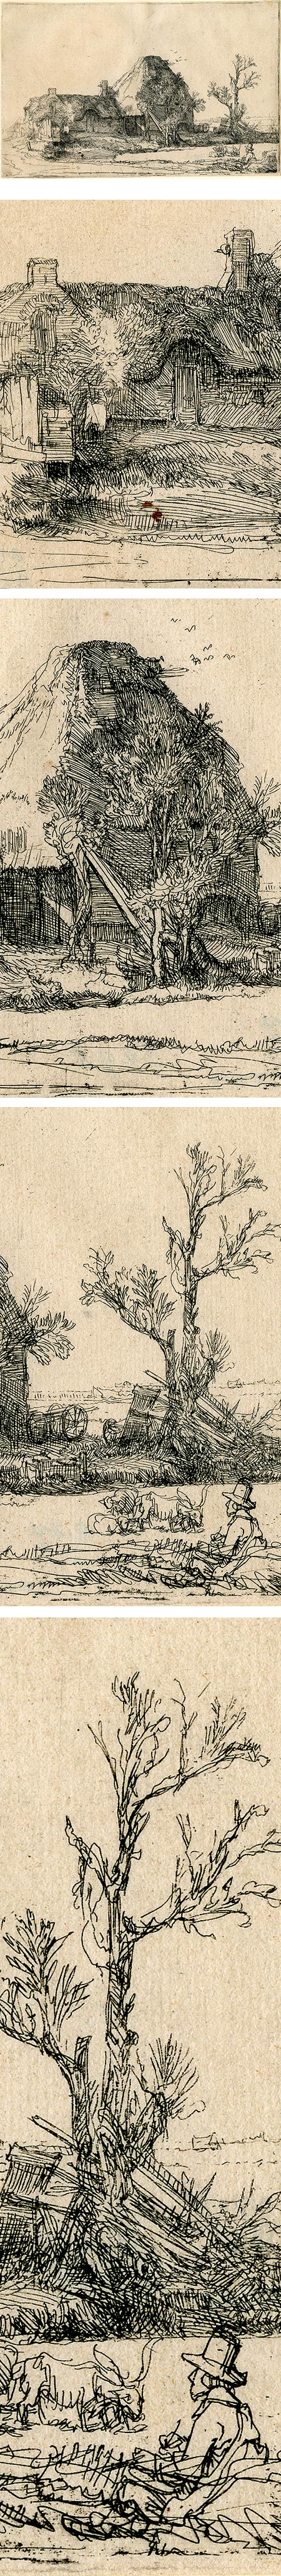 Cottages and Farm Building with a Man Sketching, Rembrandt Harmenszoon van Rijn, etching